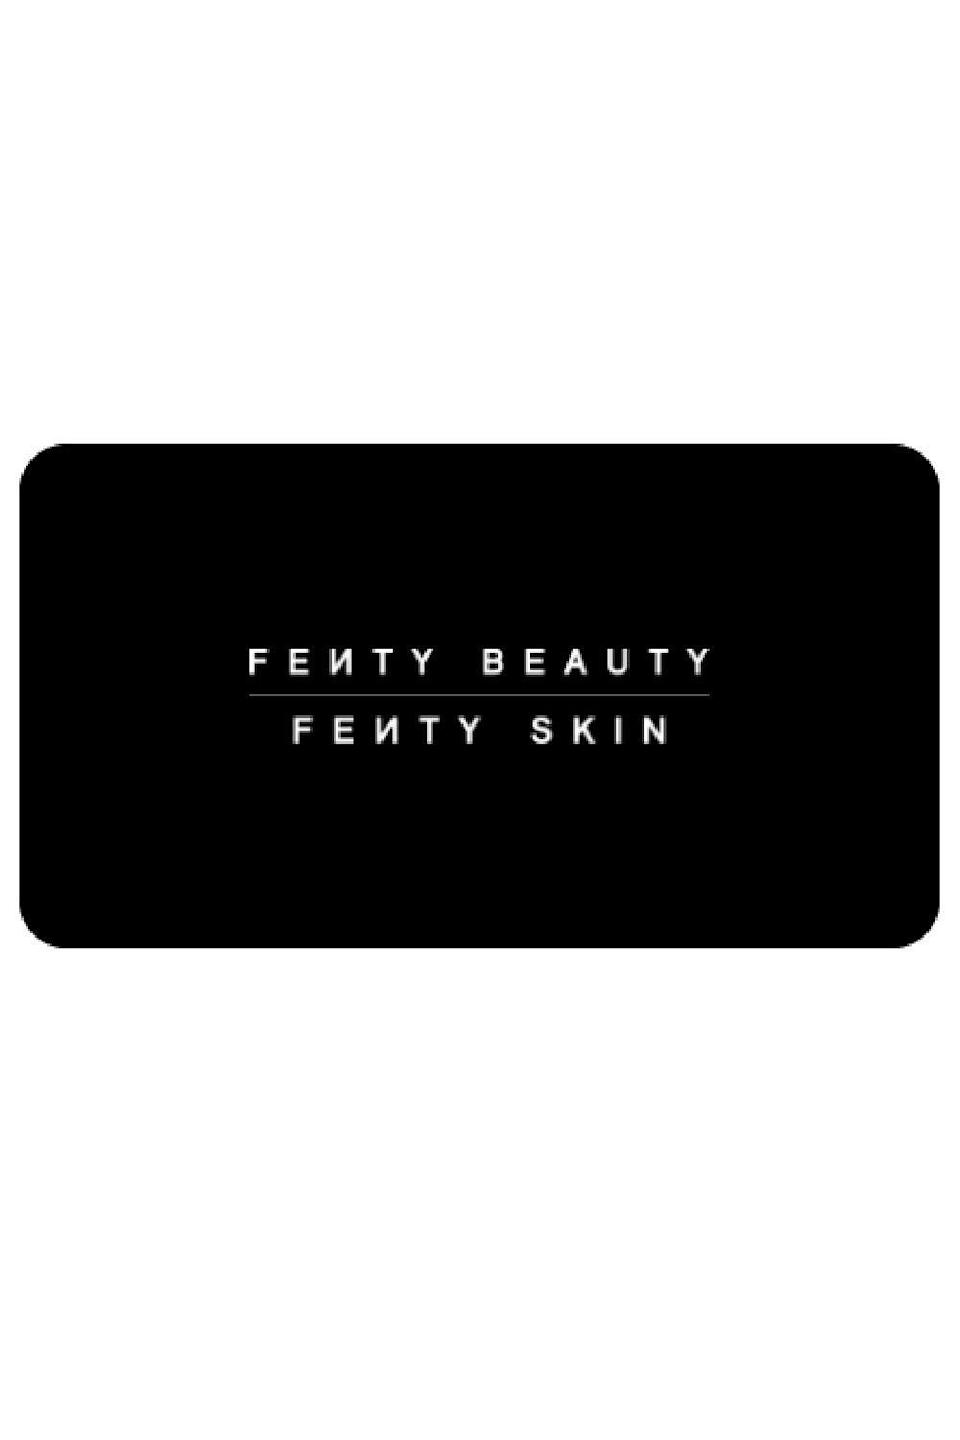 """<p><strong>Fenty Beauty</strong></p><p>fentybeauty.com</p><p><a href=""""https://go.redirectingat.com?id=74968X1596630&url=https%3A%2F%2Fwww.fentybeauty.com%2Fegift-cards&sref=https%3A%2F%2Fwww.cosmopolitan.com%2Fstyle-beauty%2Ffashion%2Fg34229001%2Fbest-gift-card-ideas-to-give%2F"""" rel=""""nofollow noopener"""" target=""""_blank"""" data-ylk=""""slk:Shop Now"""" class=""""link rapid-noclick-resp"""">Shop Now</a></p><p>We all have that one person in our lives who loves makeup or skincare more than they love us, and that's okay. We love them anyway, so much so that we'll even gift them cash to shop their favorite brands, like Fenty Beauty and Fenty Skin.</p>"""